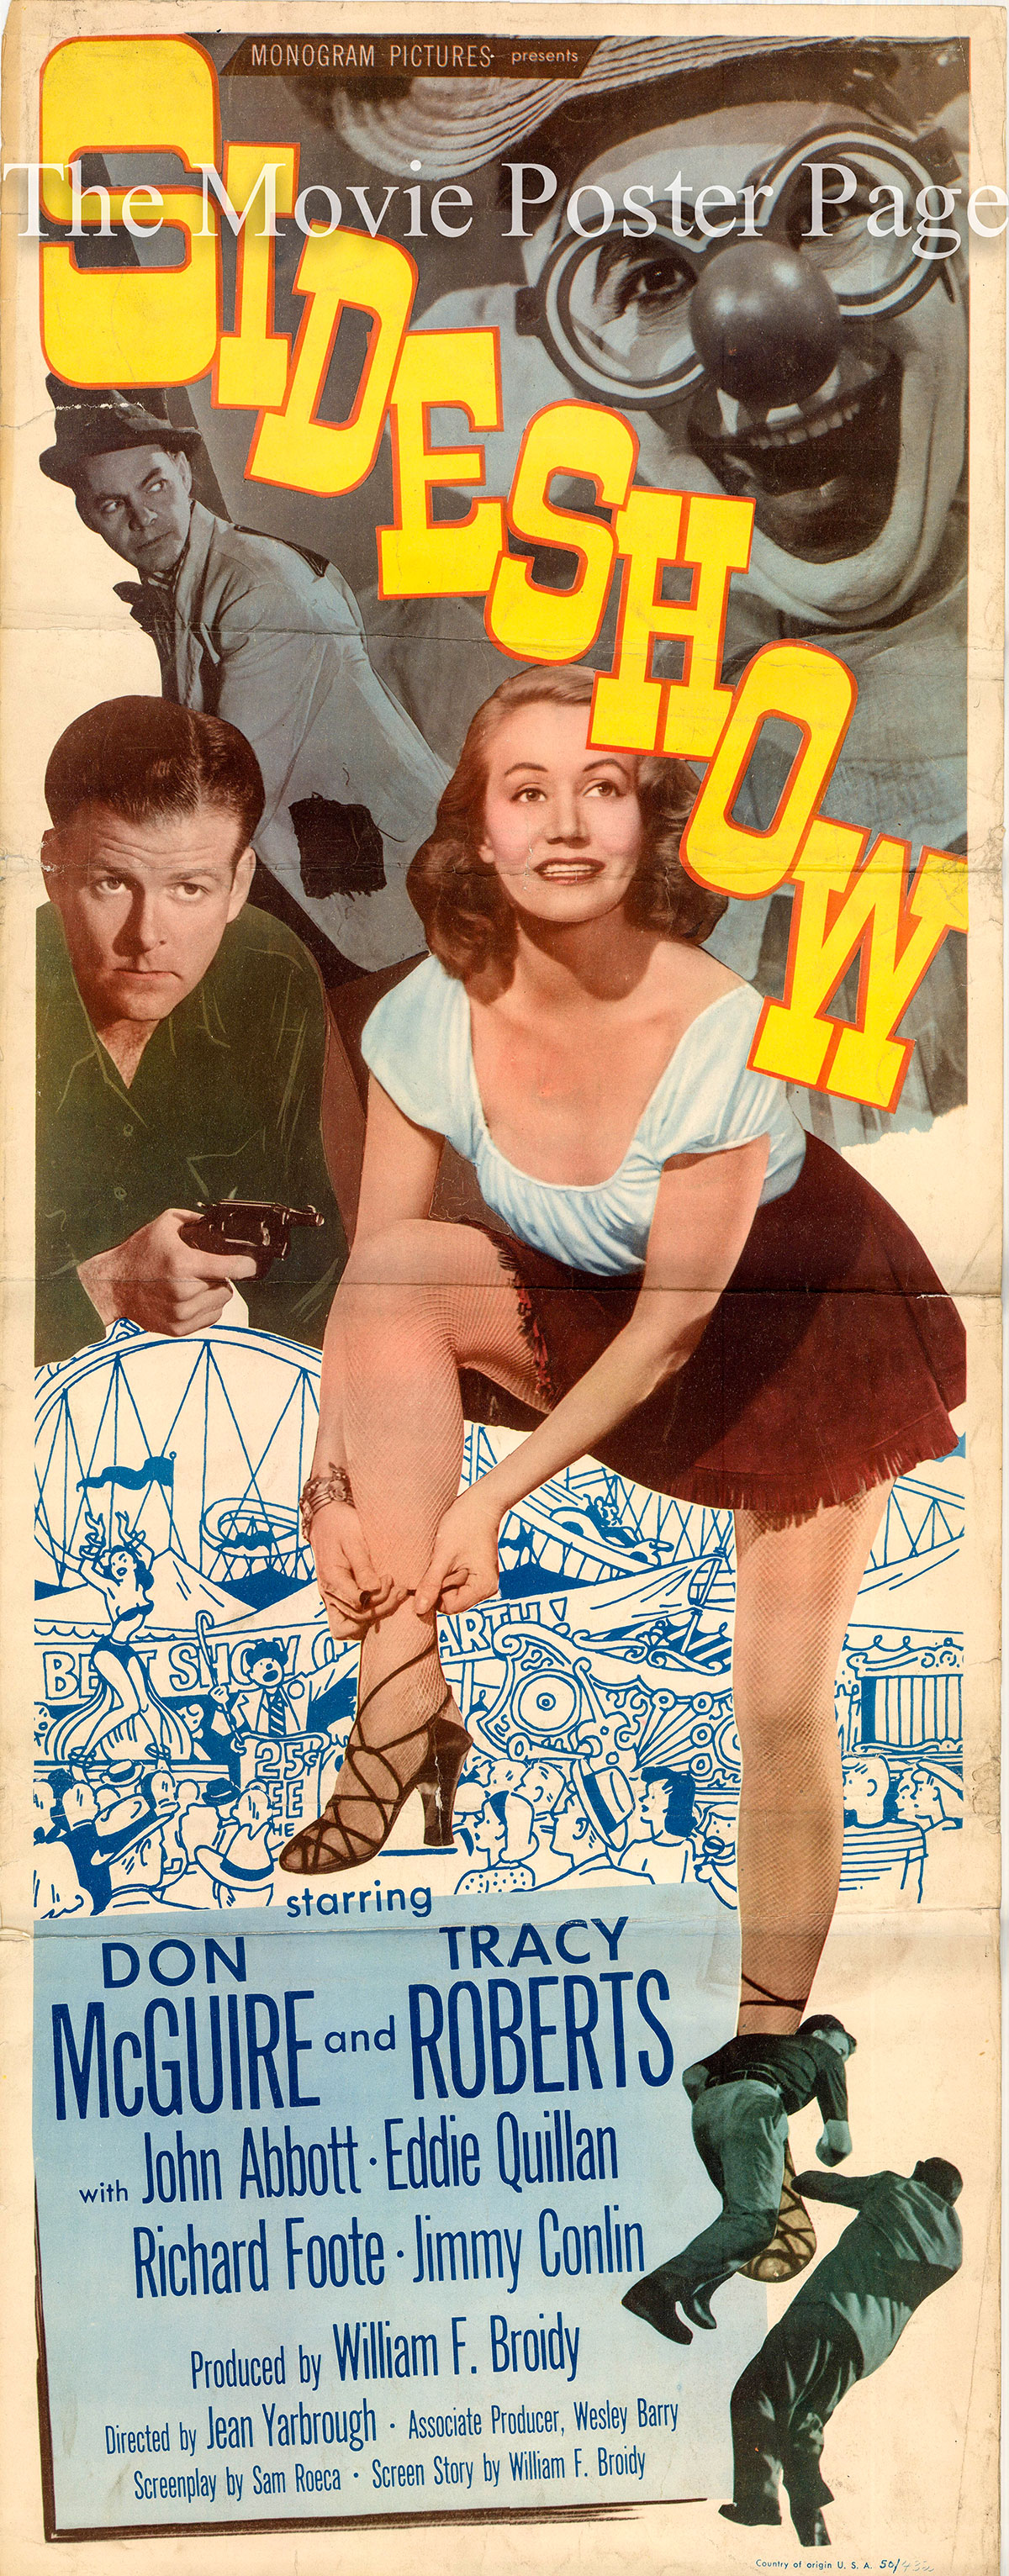 Pictured is a US insert promotional poster for the 1950 Jean Yarbrough film Sideshow starring Don McGuire.